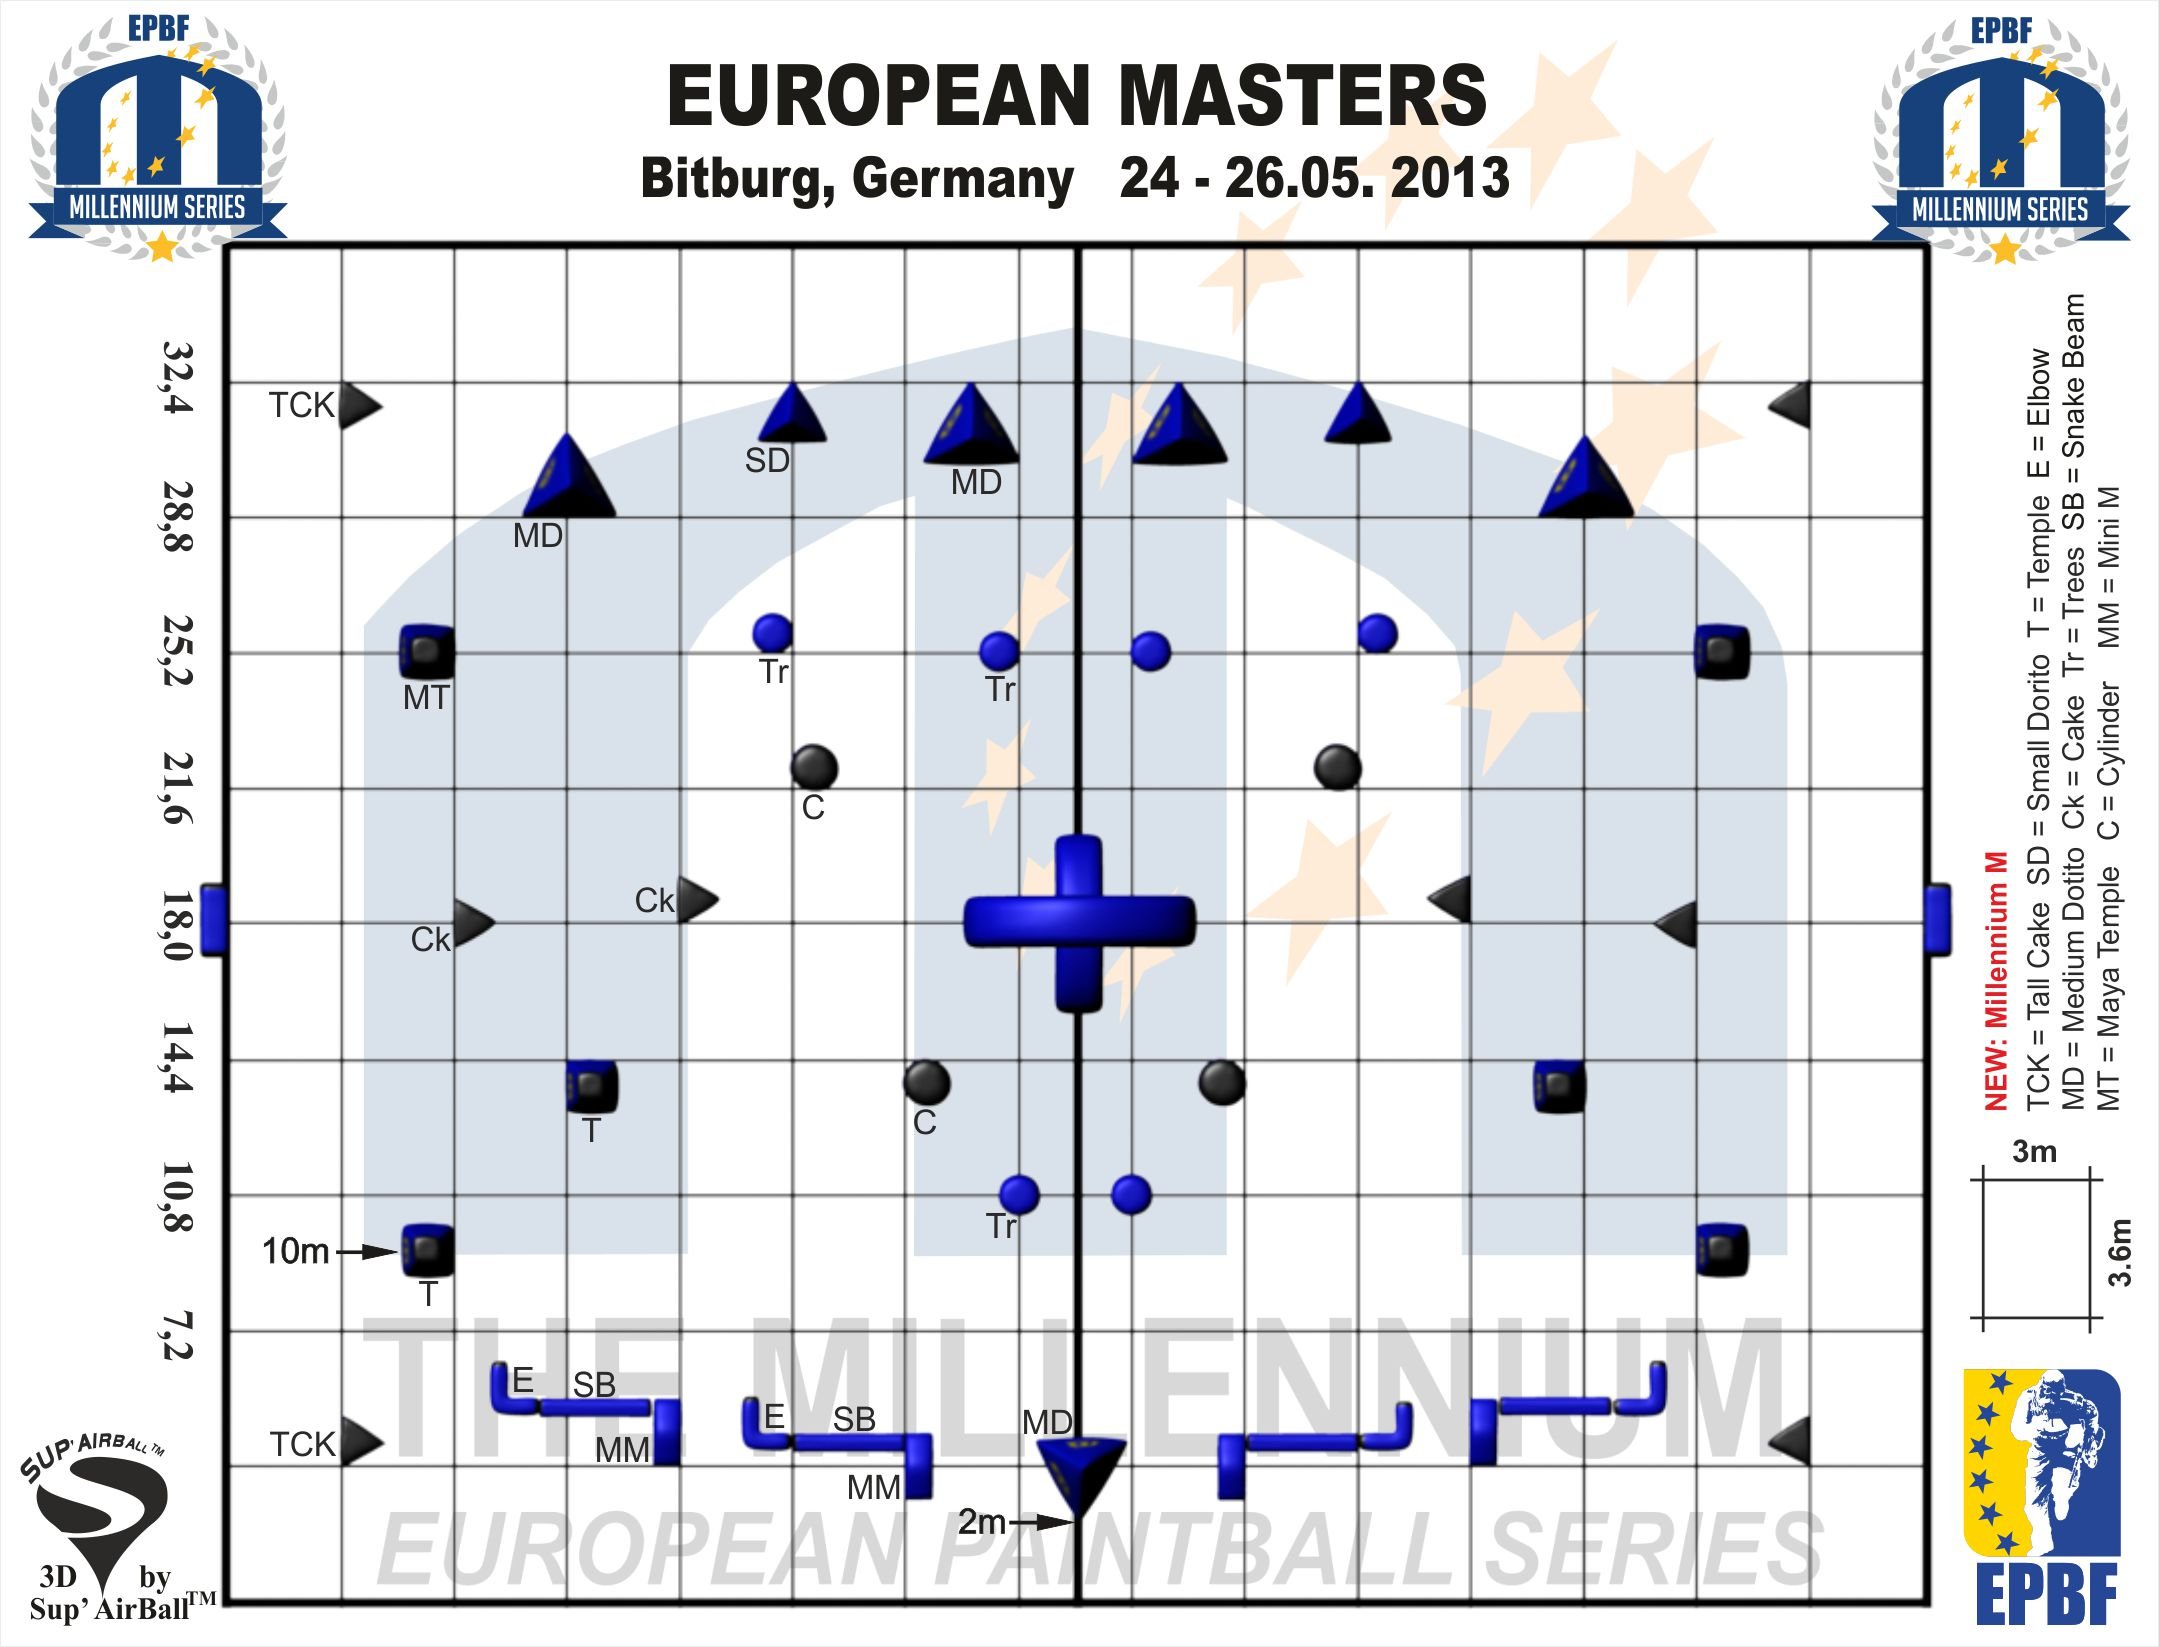 2013 Millennium Series European Masters at Bitburg Field Layout Released